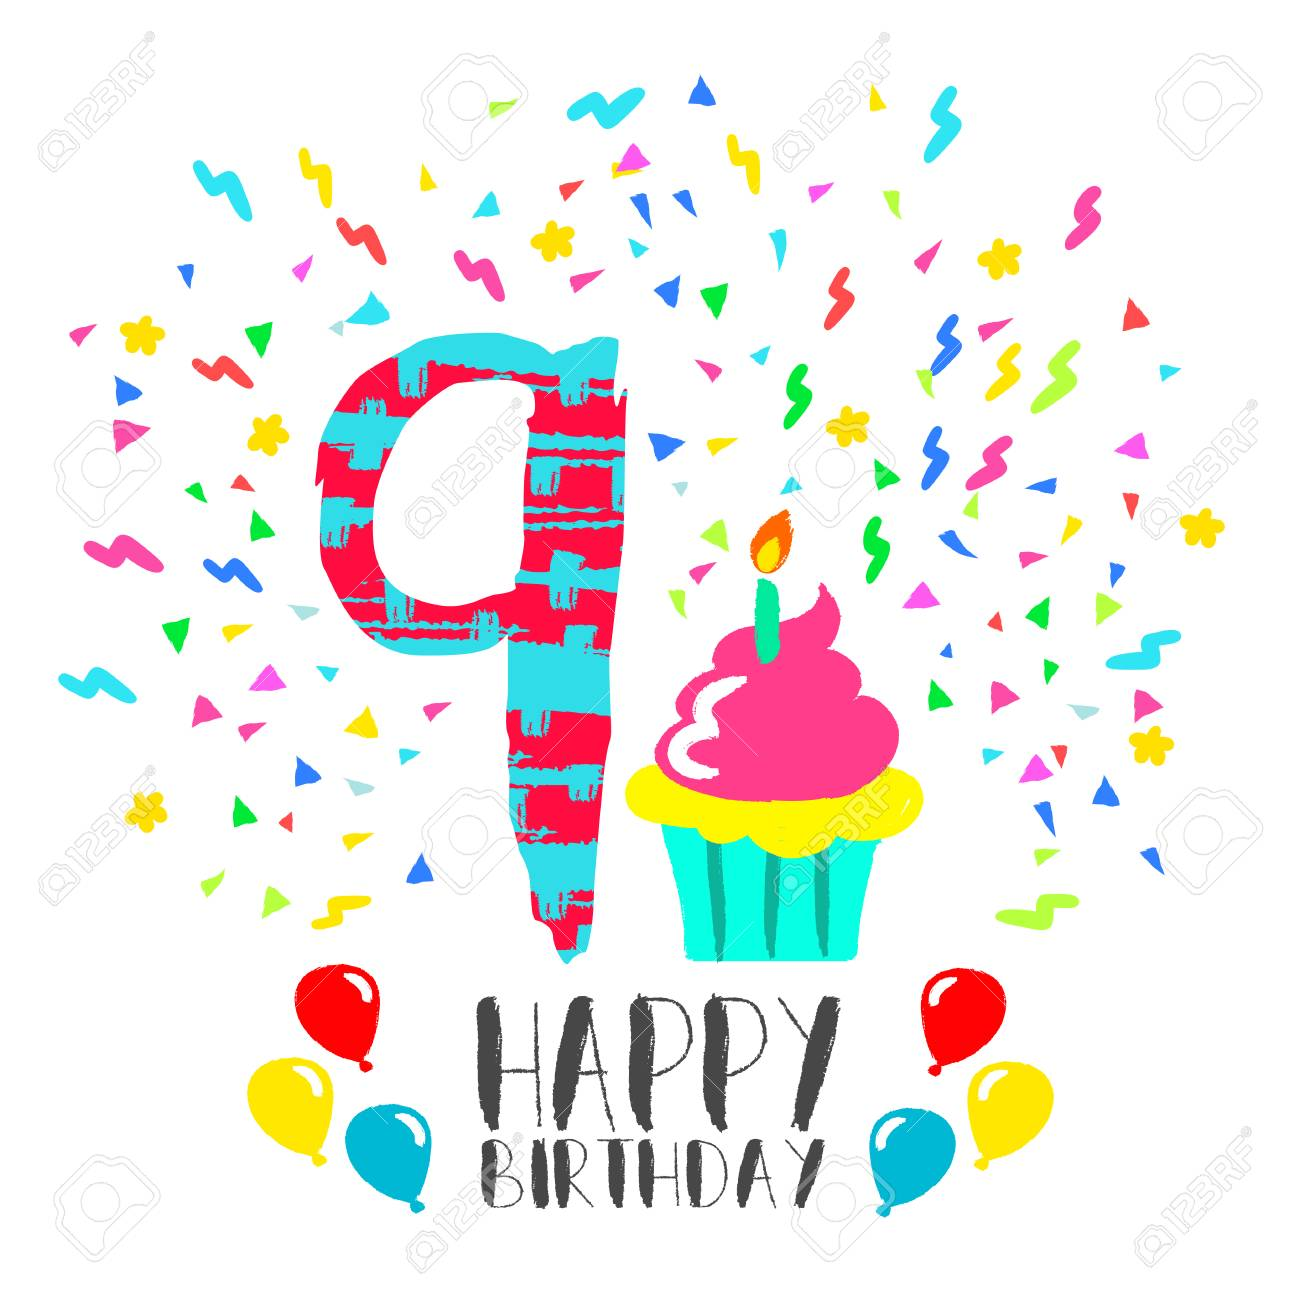 happy birthday 9 ; 66887030-happy-birthday-number-9-greeting-card-for-nine-year-in-fun-art-style-with-party-confetti-and-cake-an